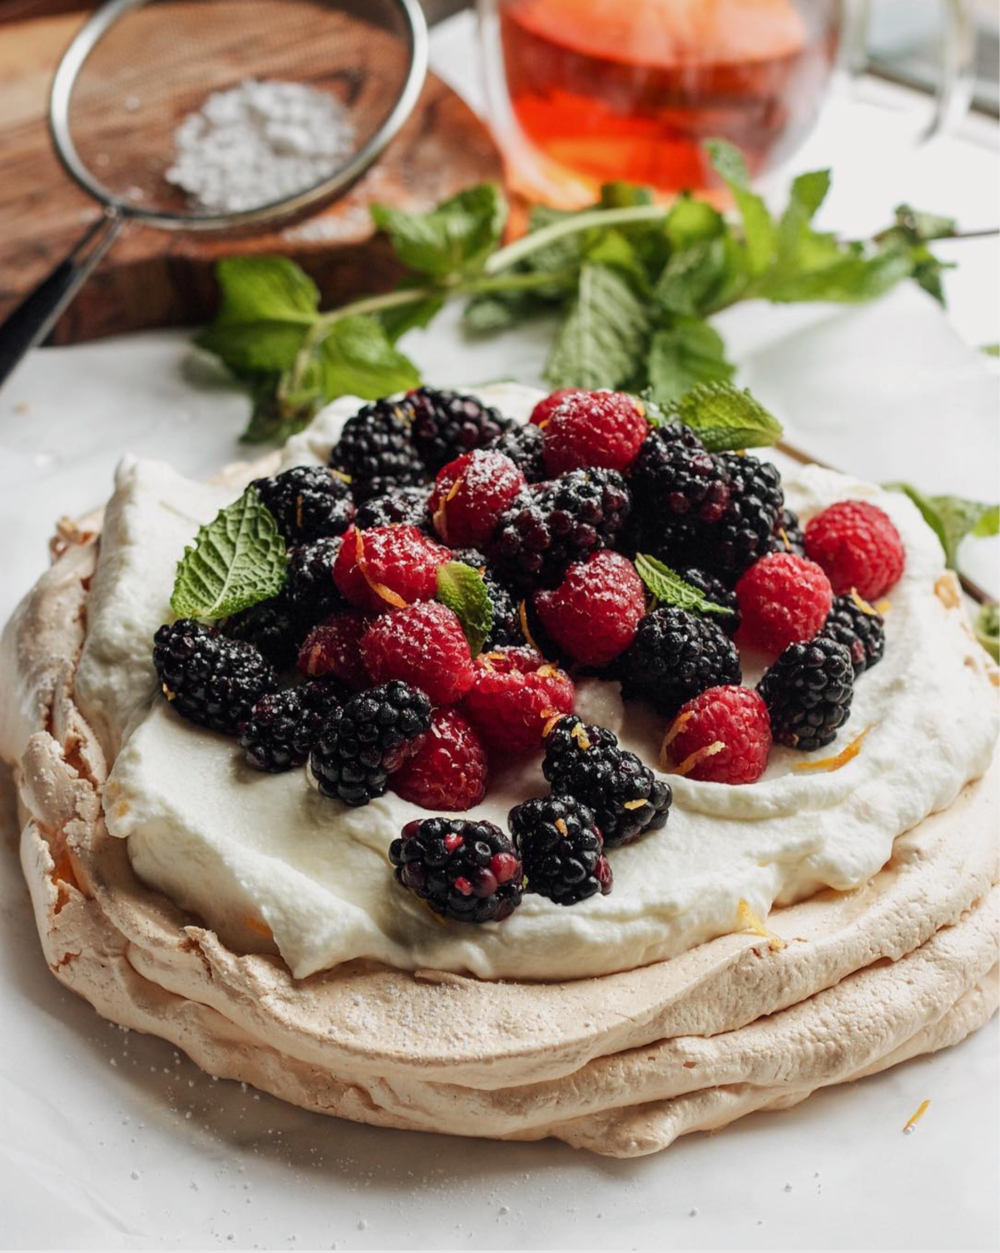 Vanilla Pavlova with Berries and Lemon Curd